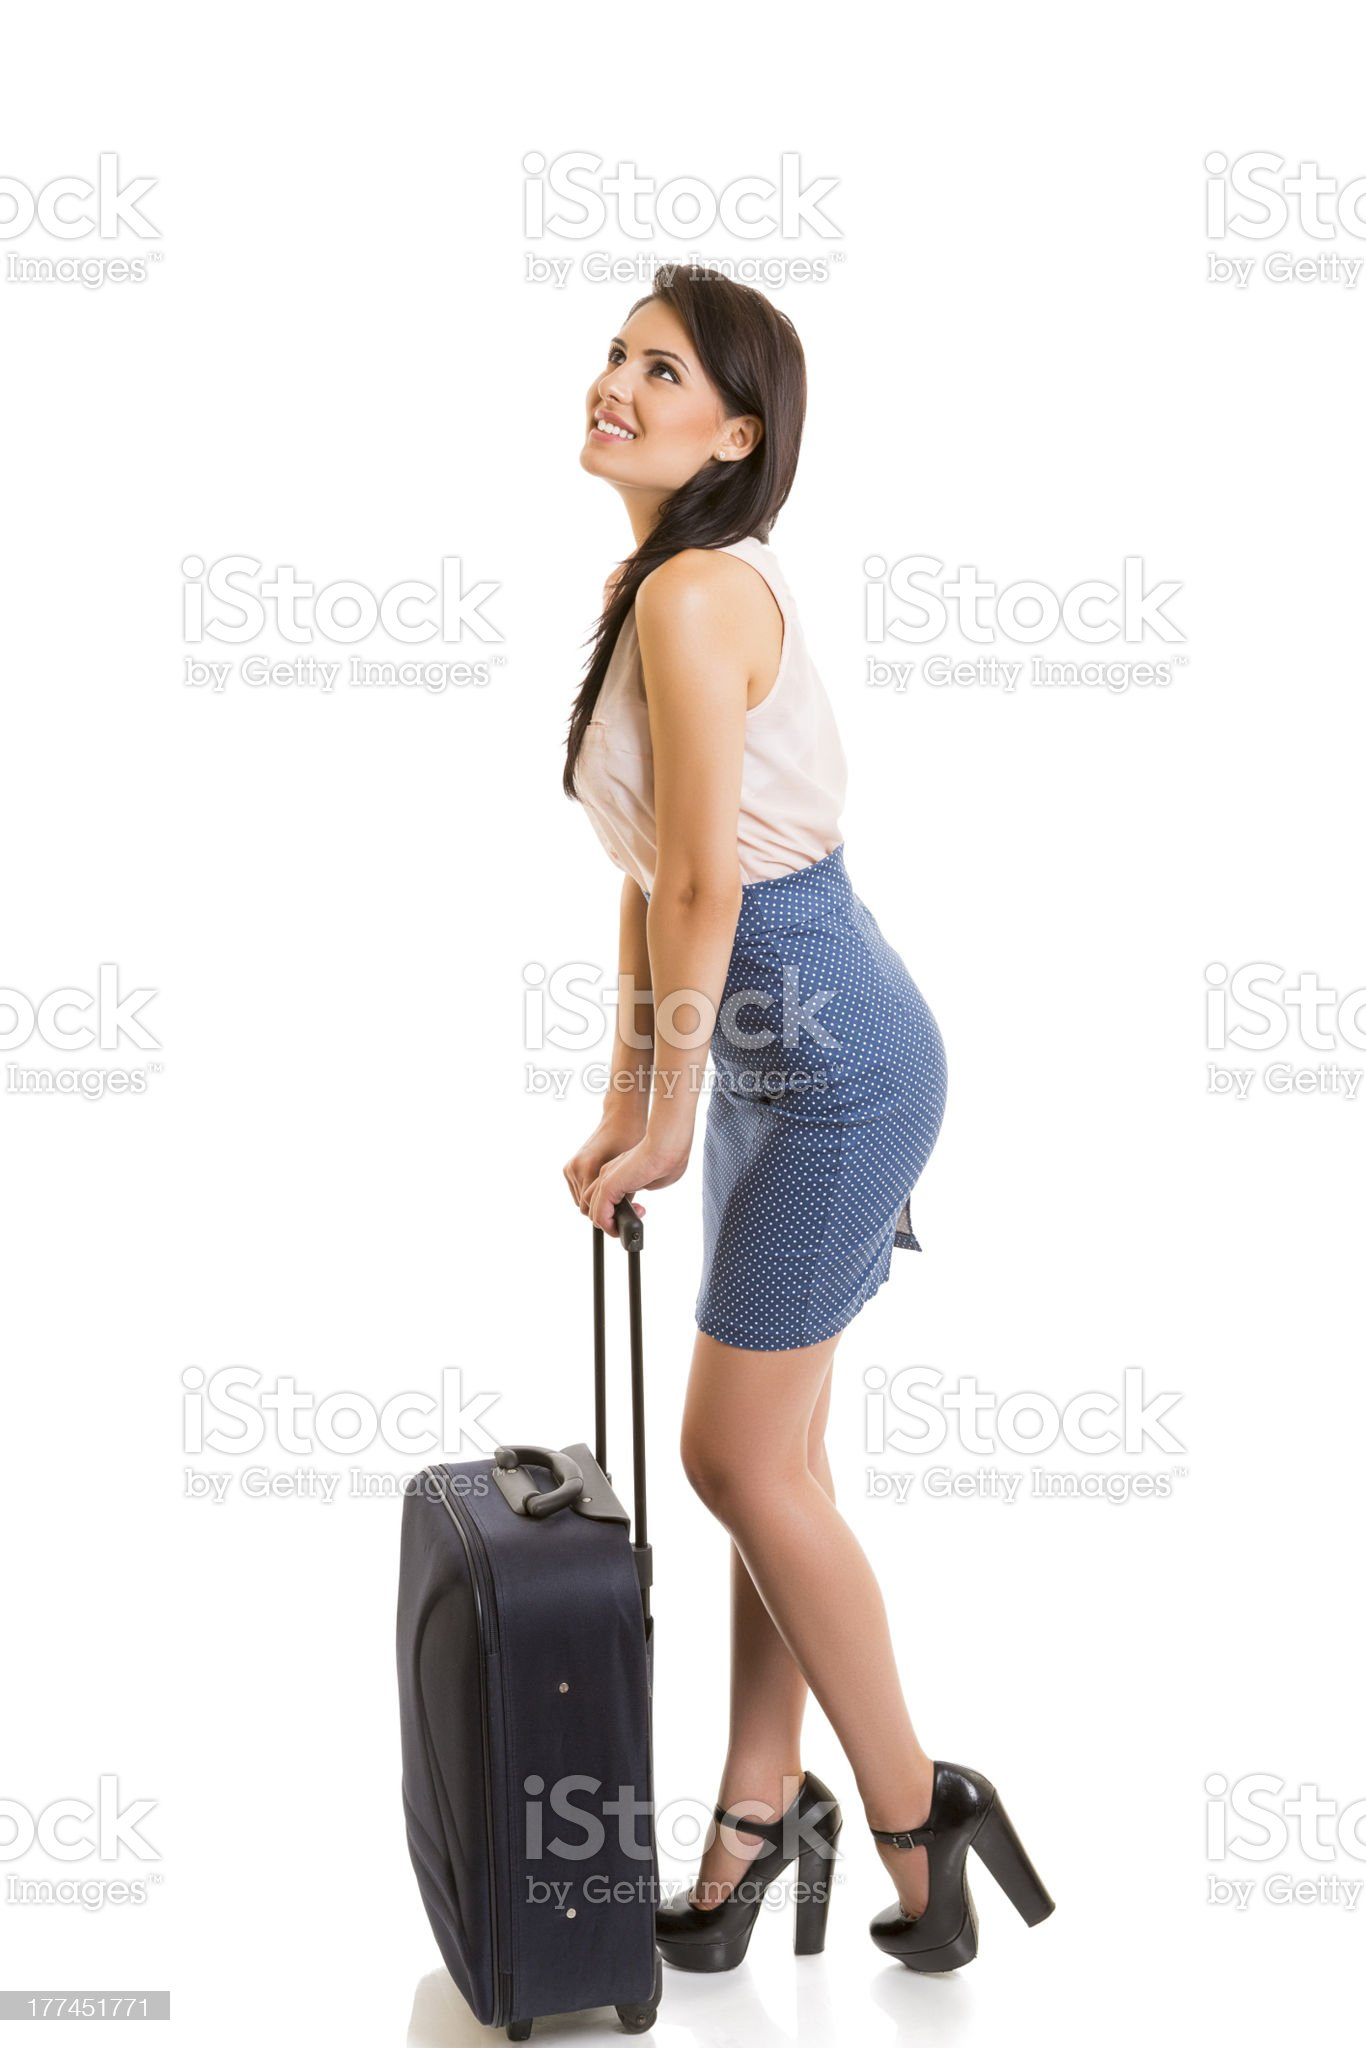 Smiling woman with travel luggage royalty-free stock photo